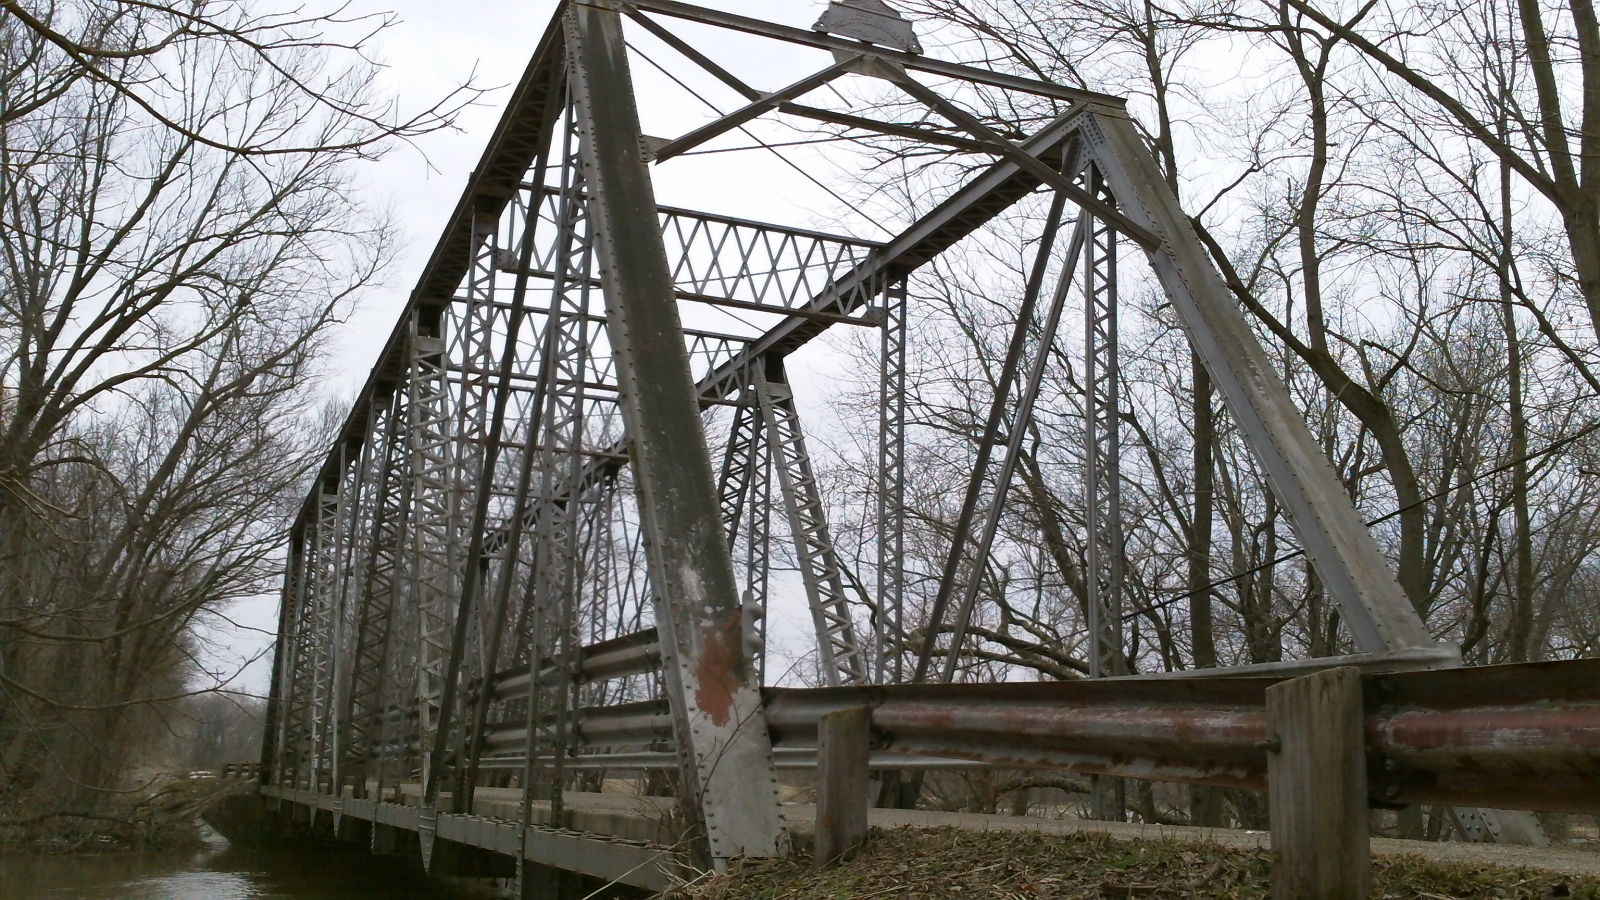 Illinois vermilion county armstrong - North Portal